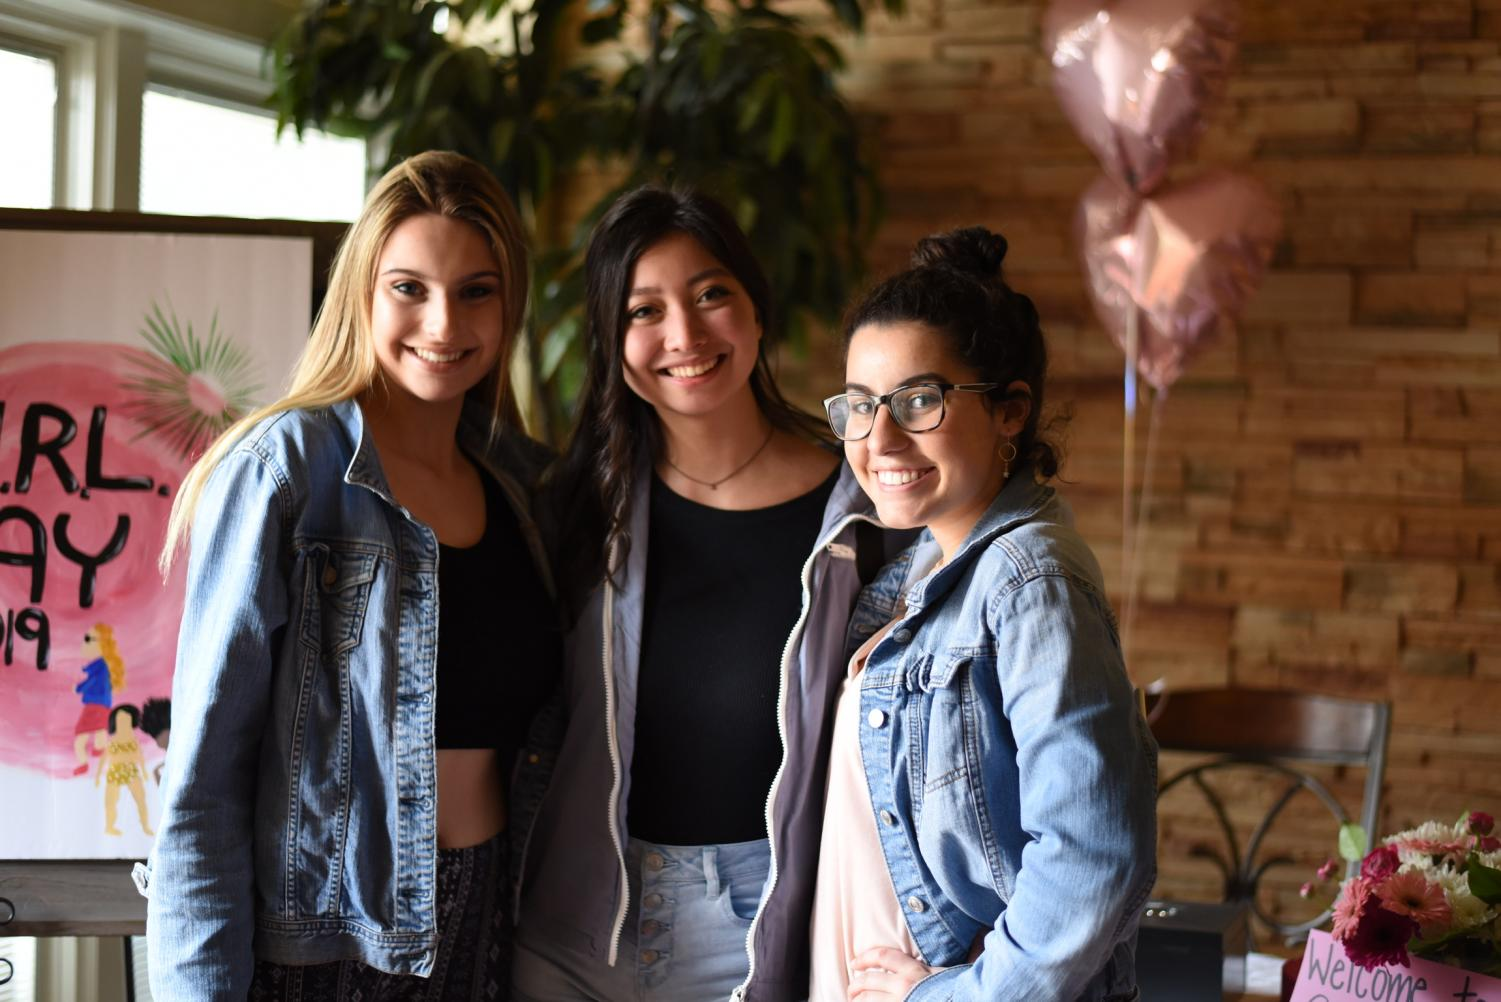 Pictured are (left to right) seniors Carly Friedlander, Sabrina Stone and Quinn Conahan. Conahan hosted GIRL Day, an event meant to inspire women to be authentic and not change because of any pressures.